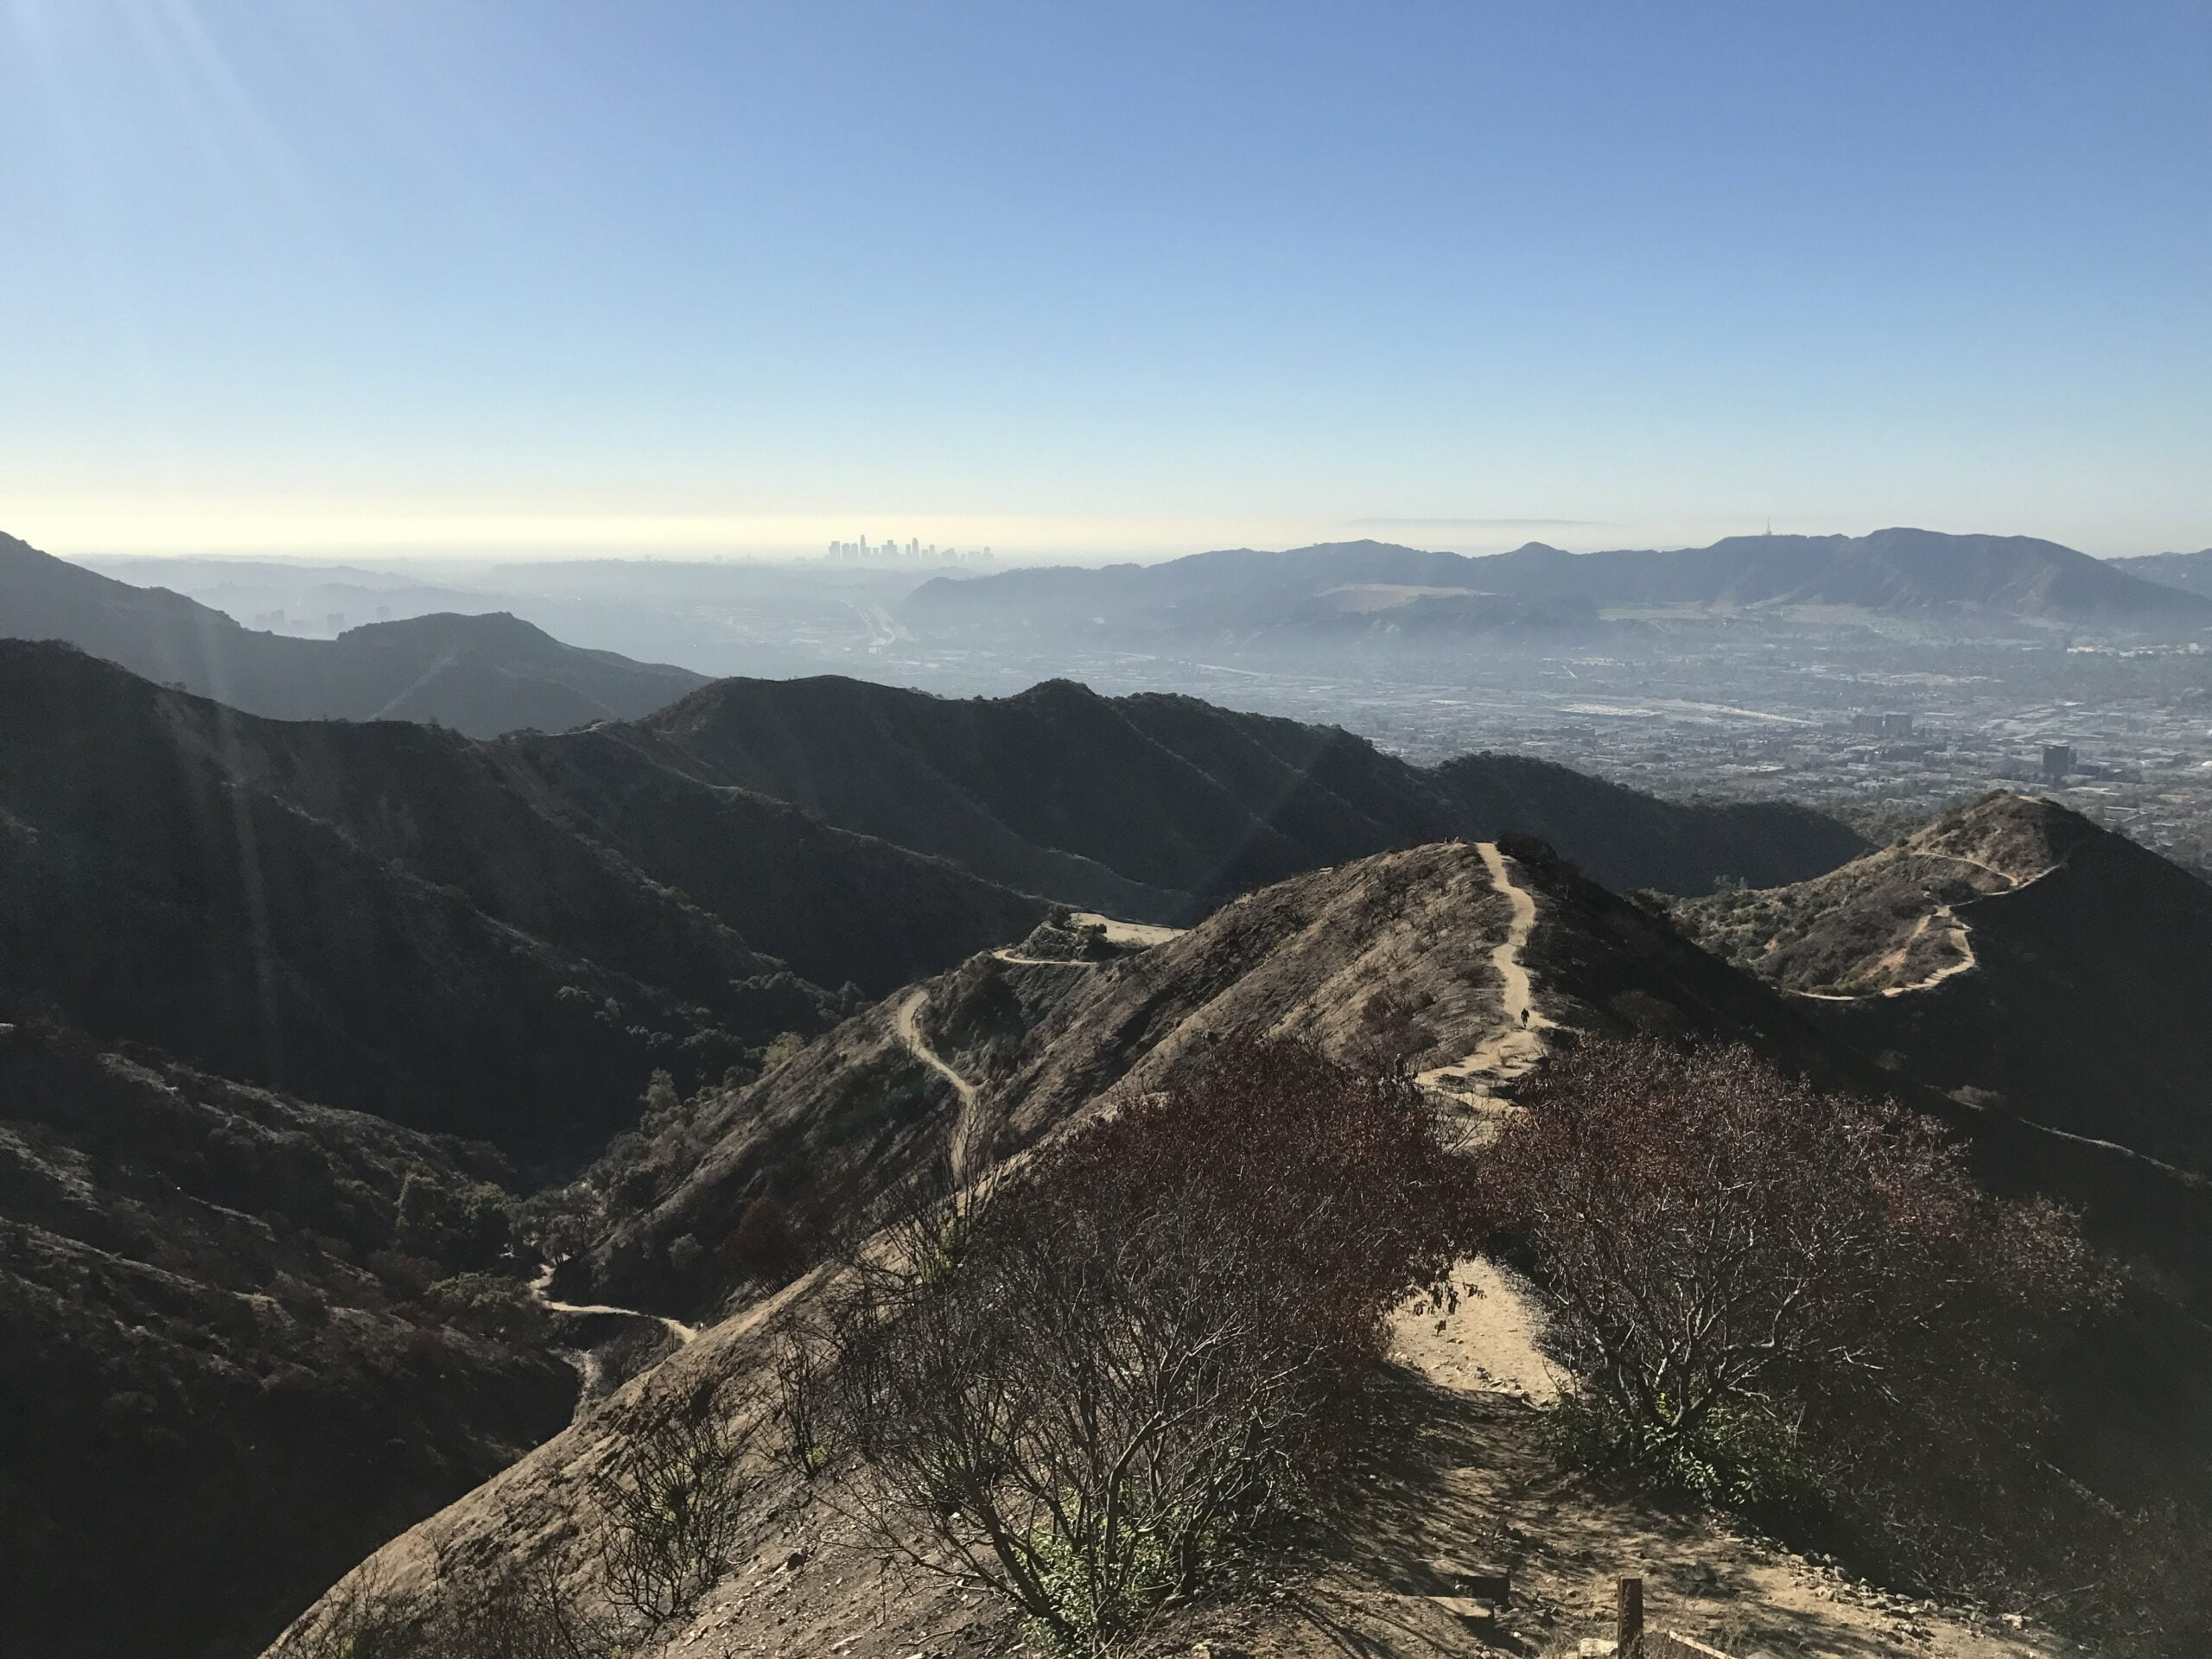 Wildwood canyon summit view